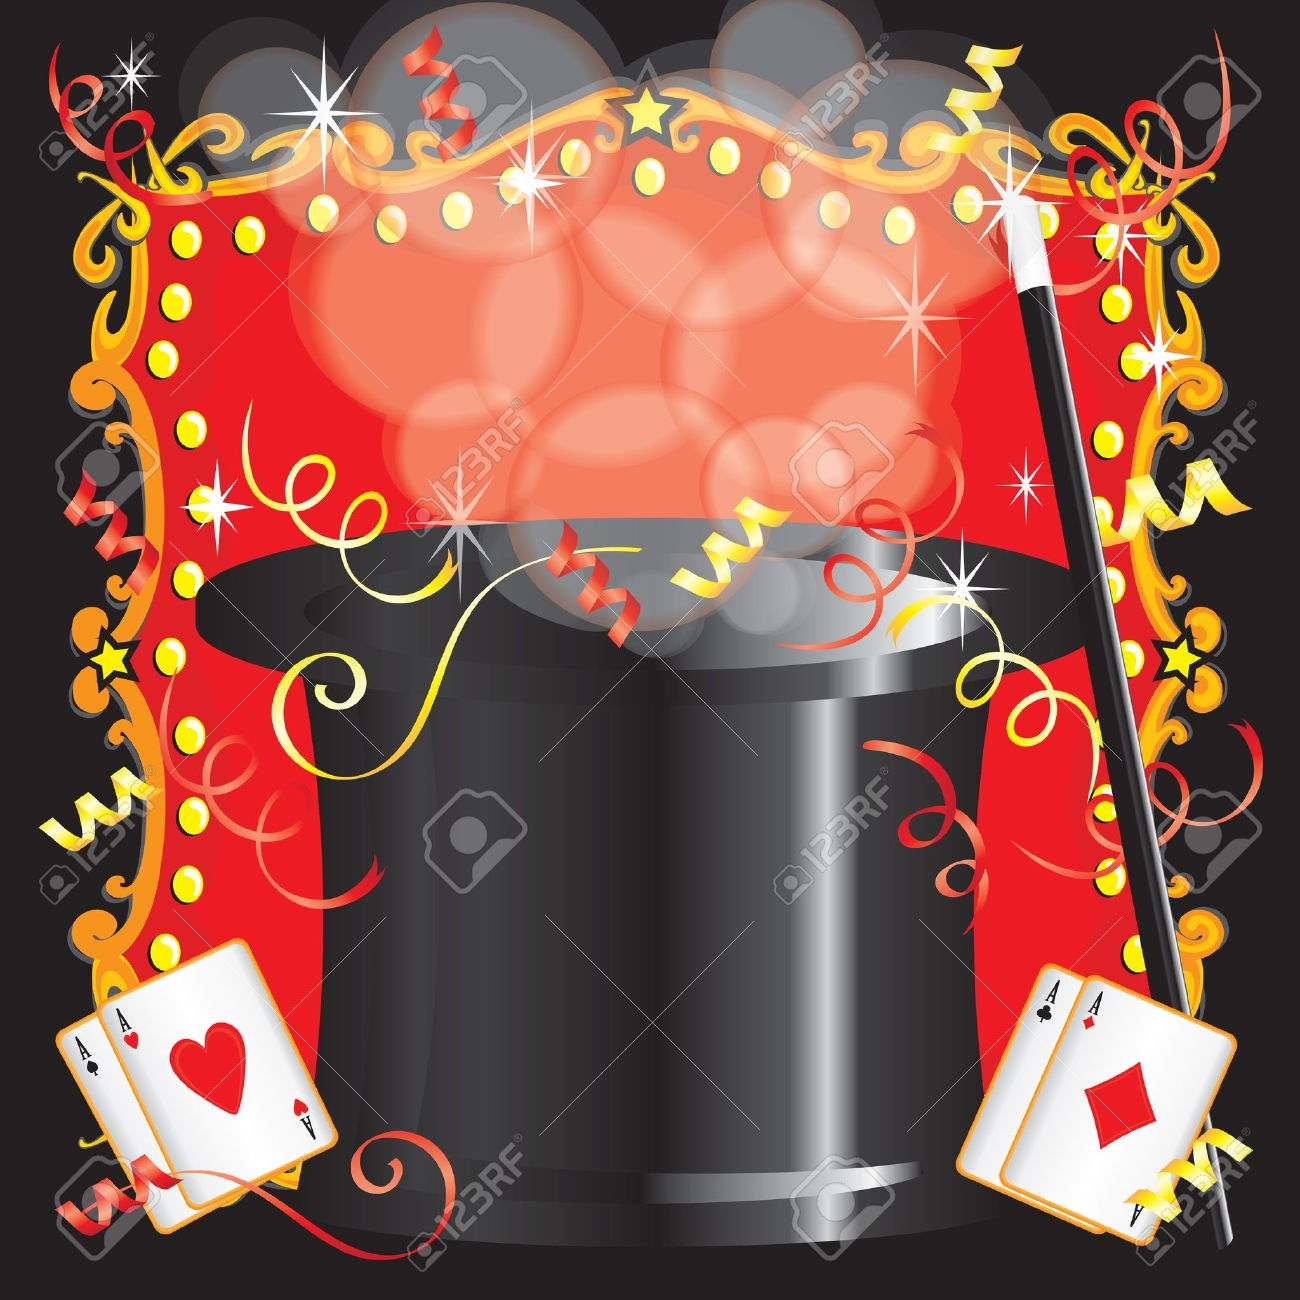 Magician s magic act birthday party invitation with magic wand, cards and red marquee - 13271237